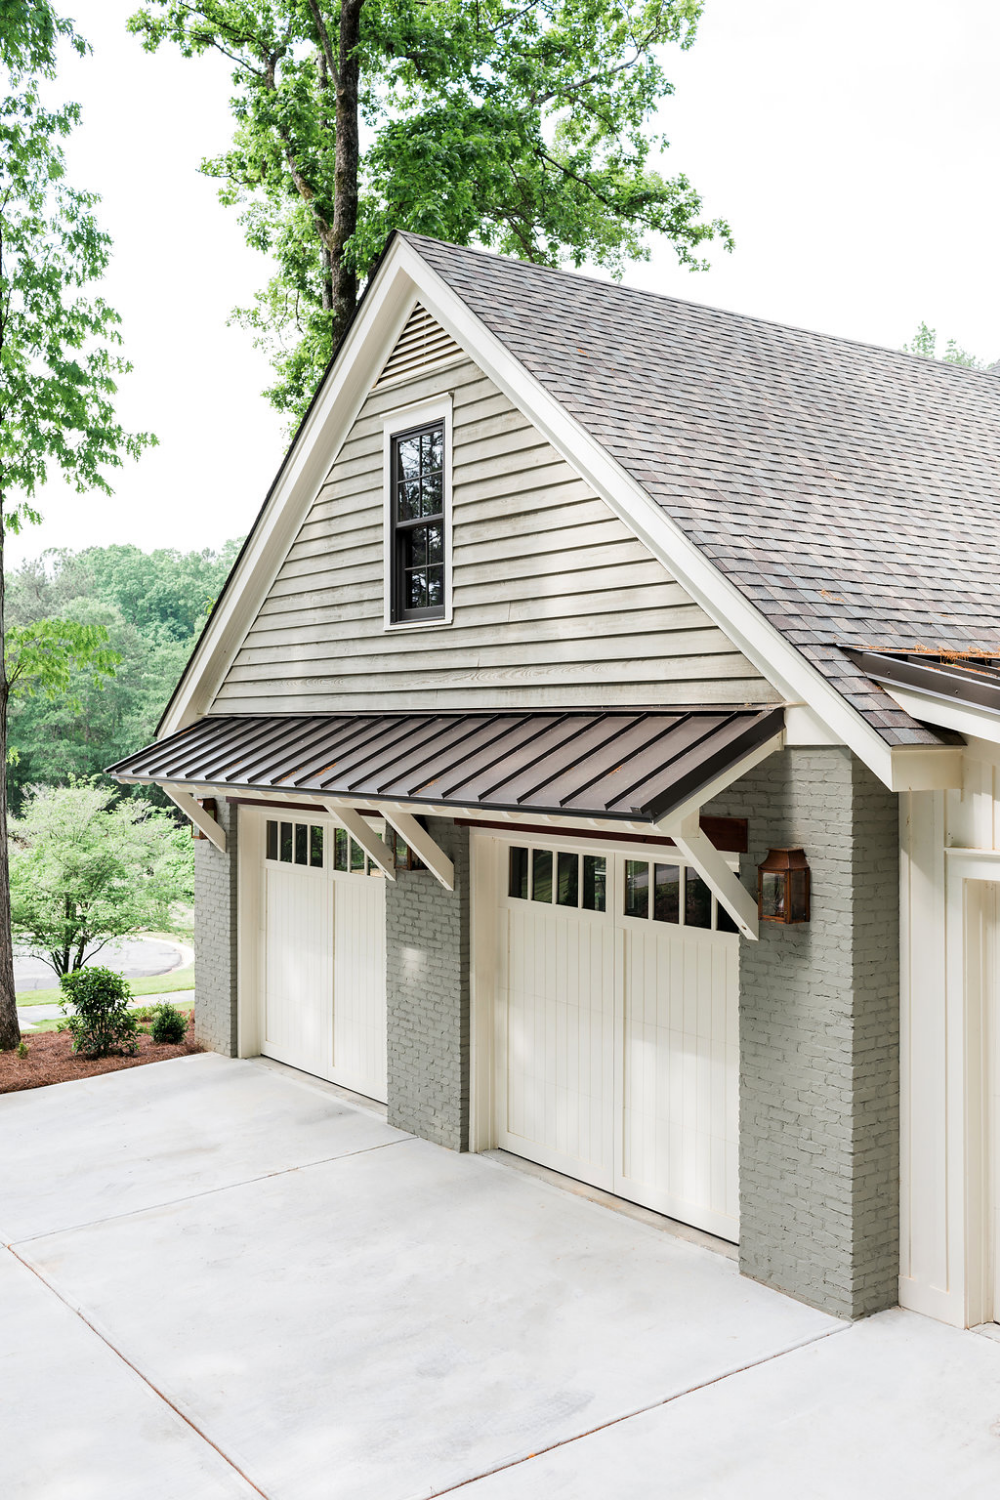 Pin By Bevolo On Bevolo Garage And Extra Spaces Garage Door Design House Awnings Garage Design